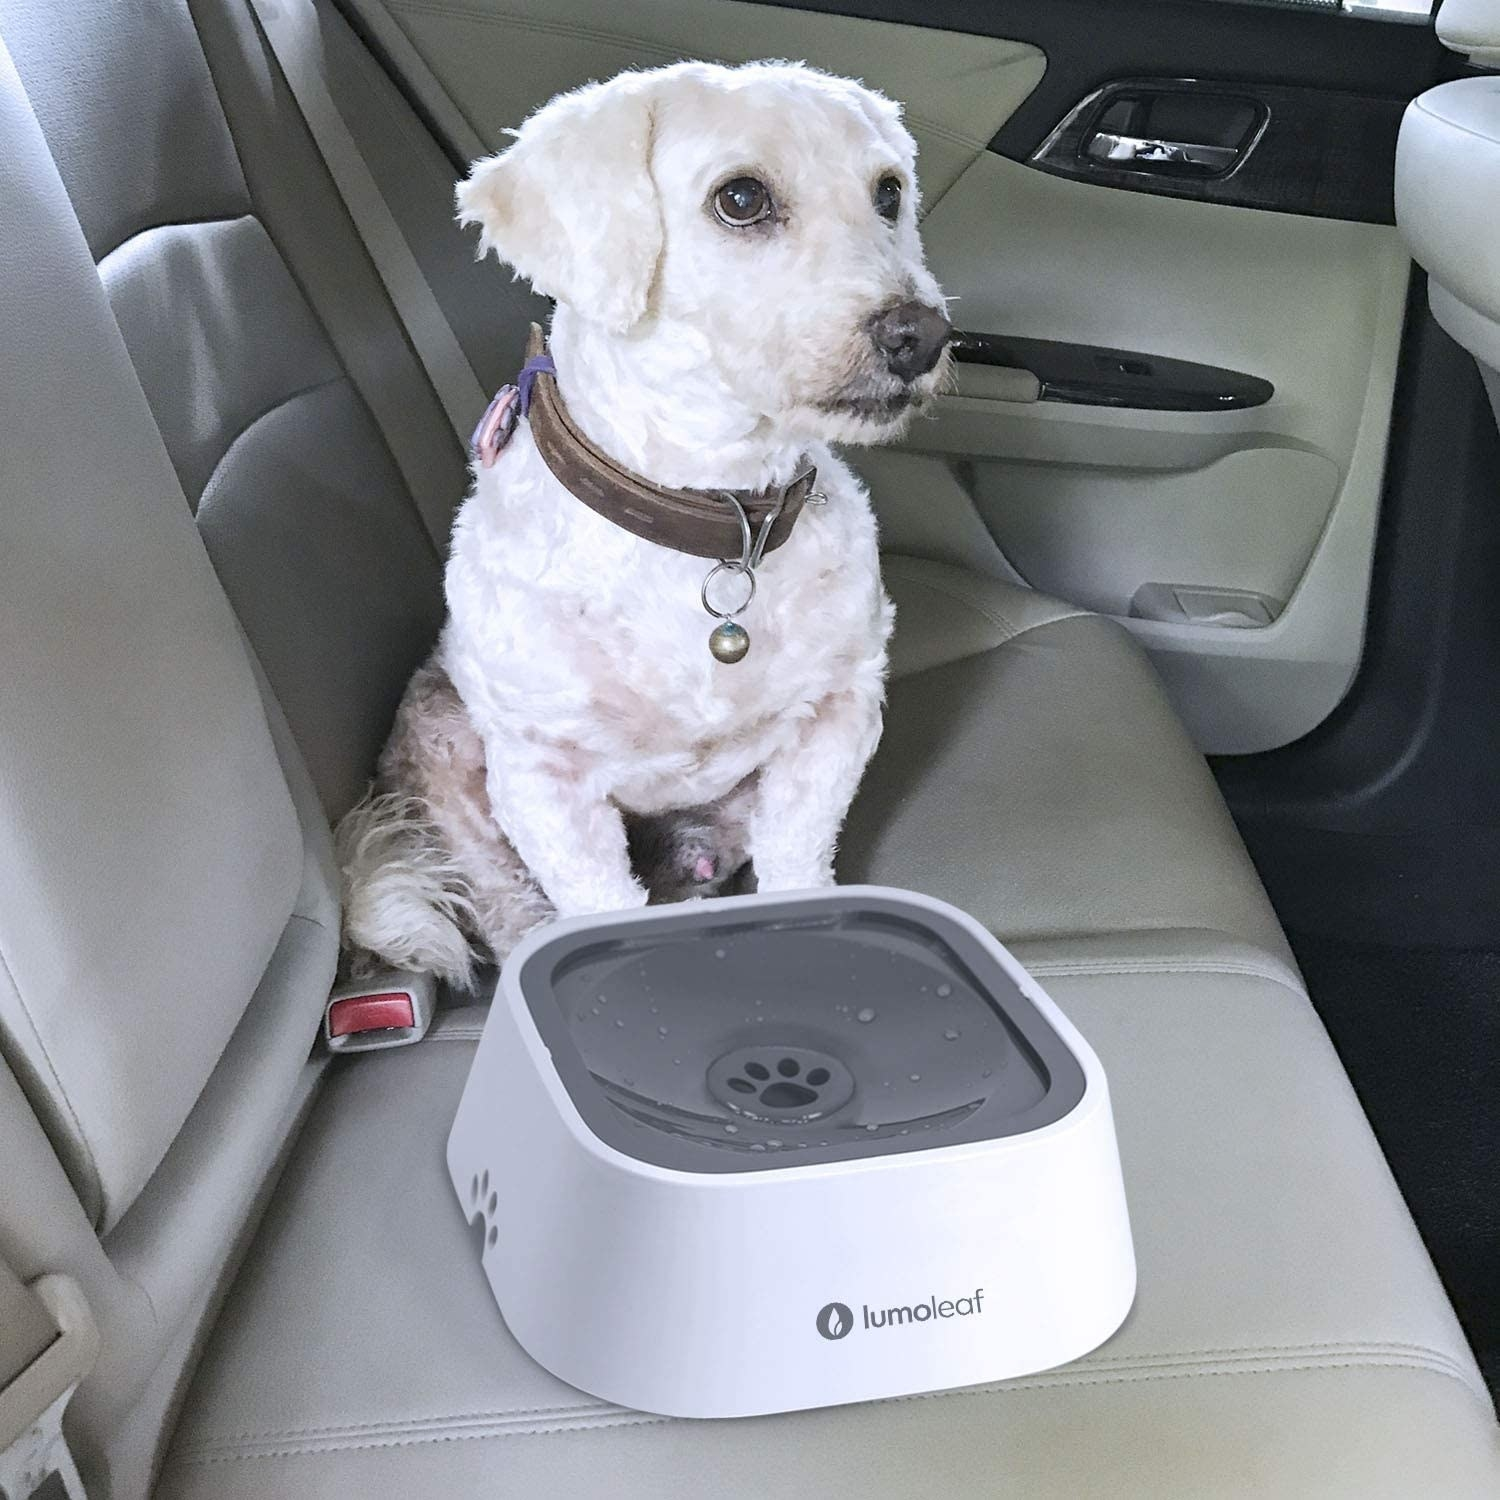 A got with the bowl in the backseat of a car